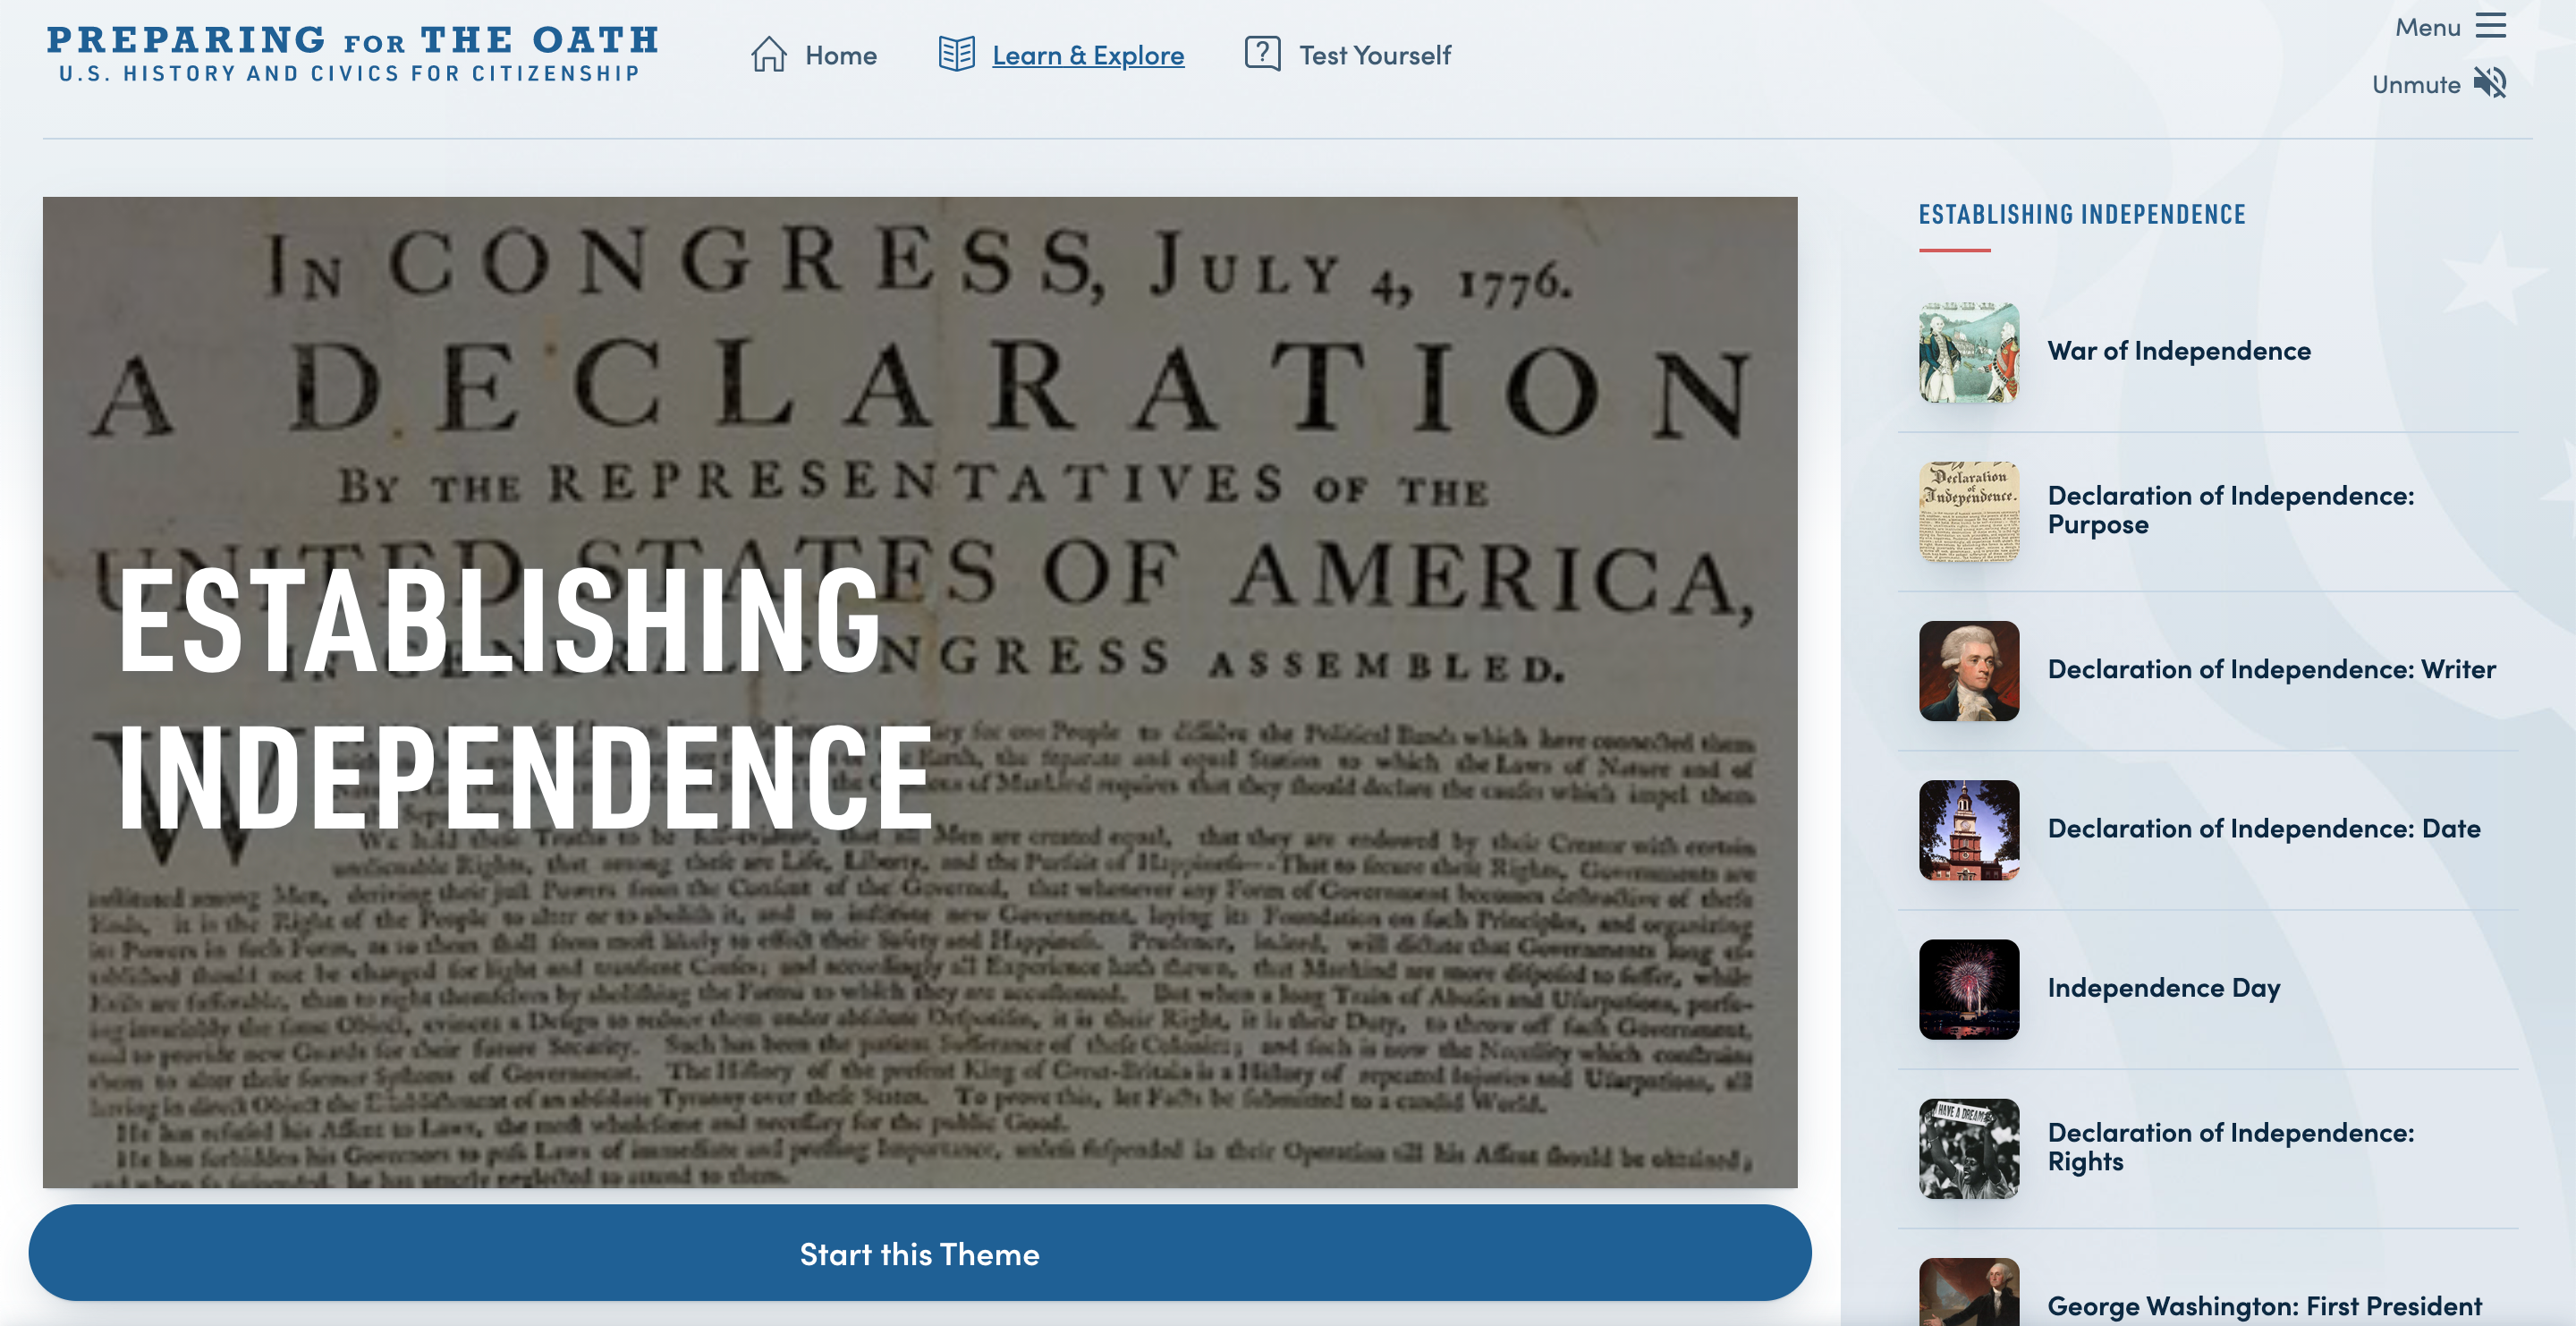 Thumbnail image of Preparing for the Oath: Establishing Independence resource